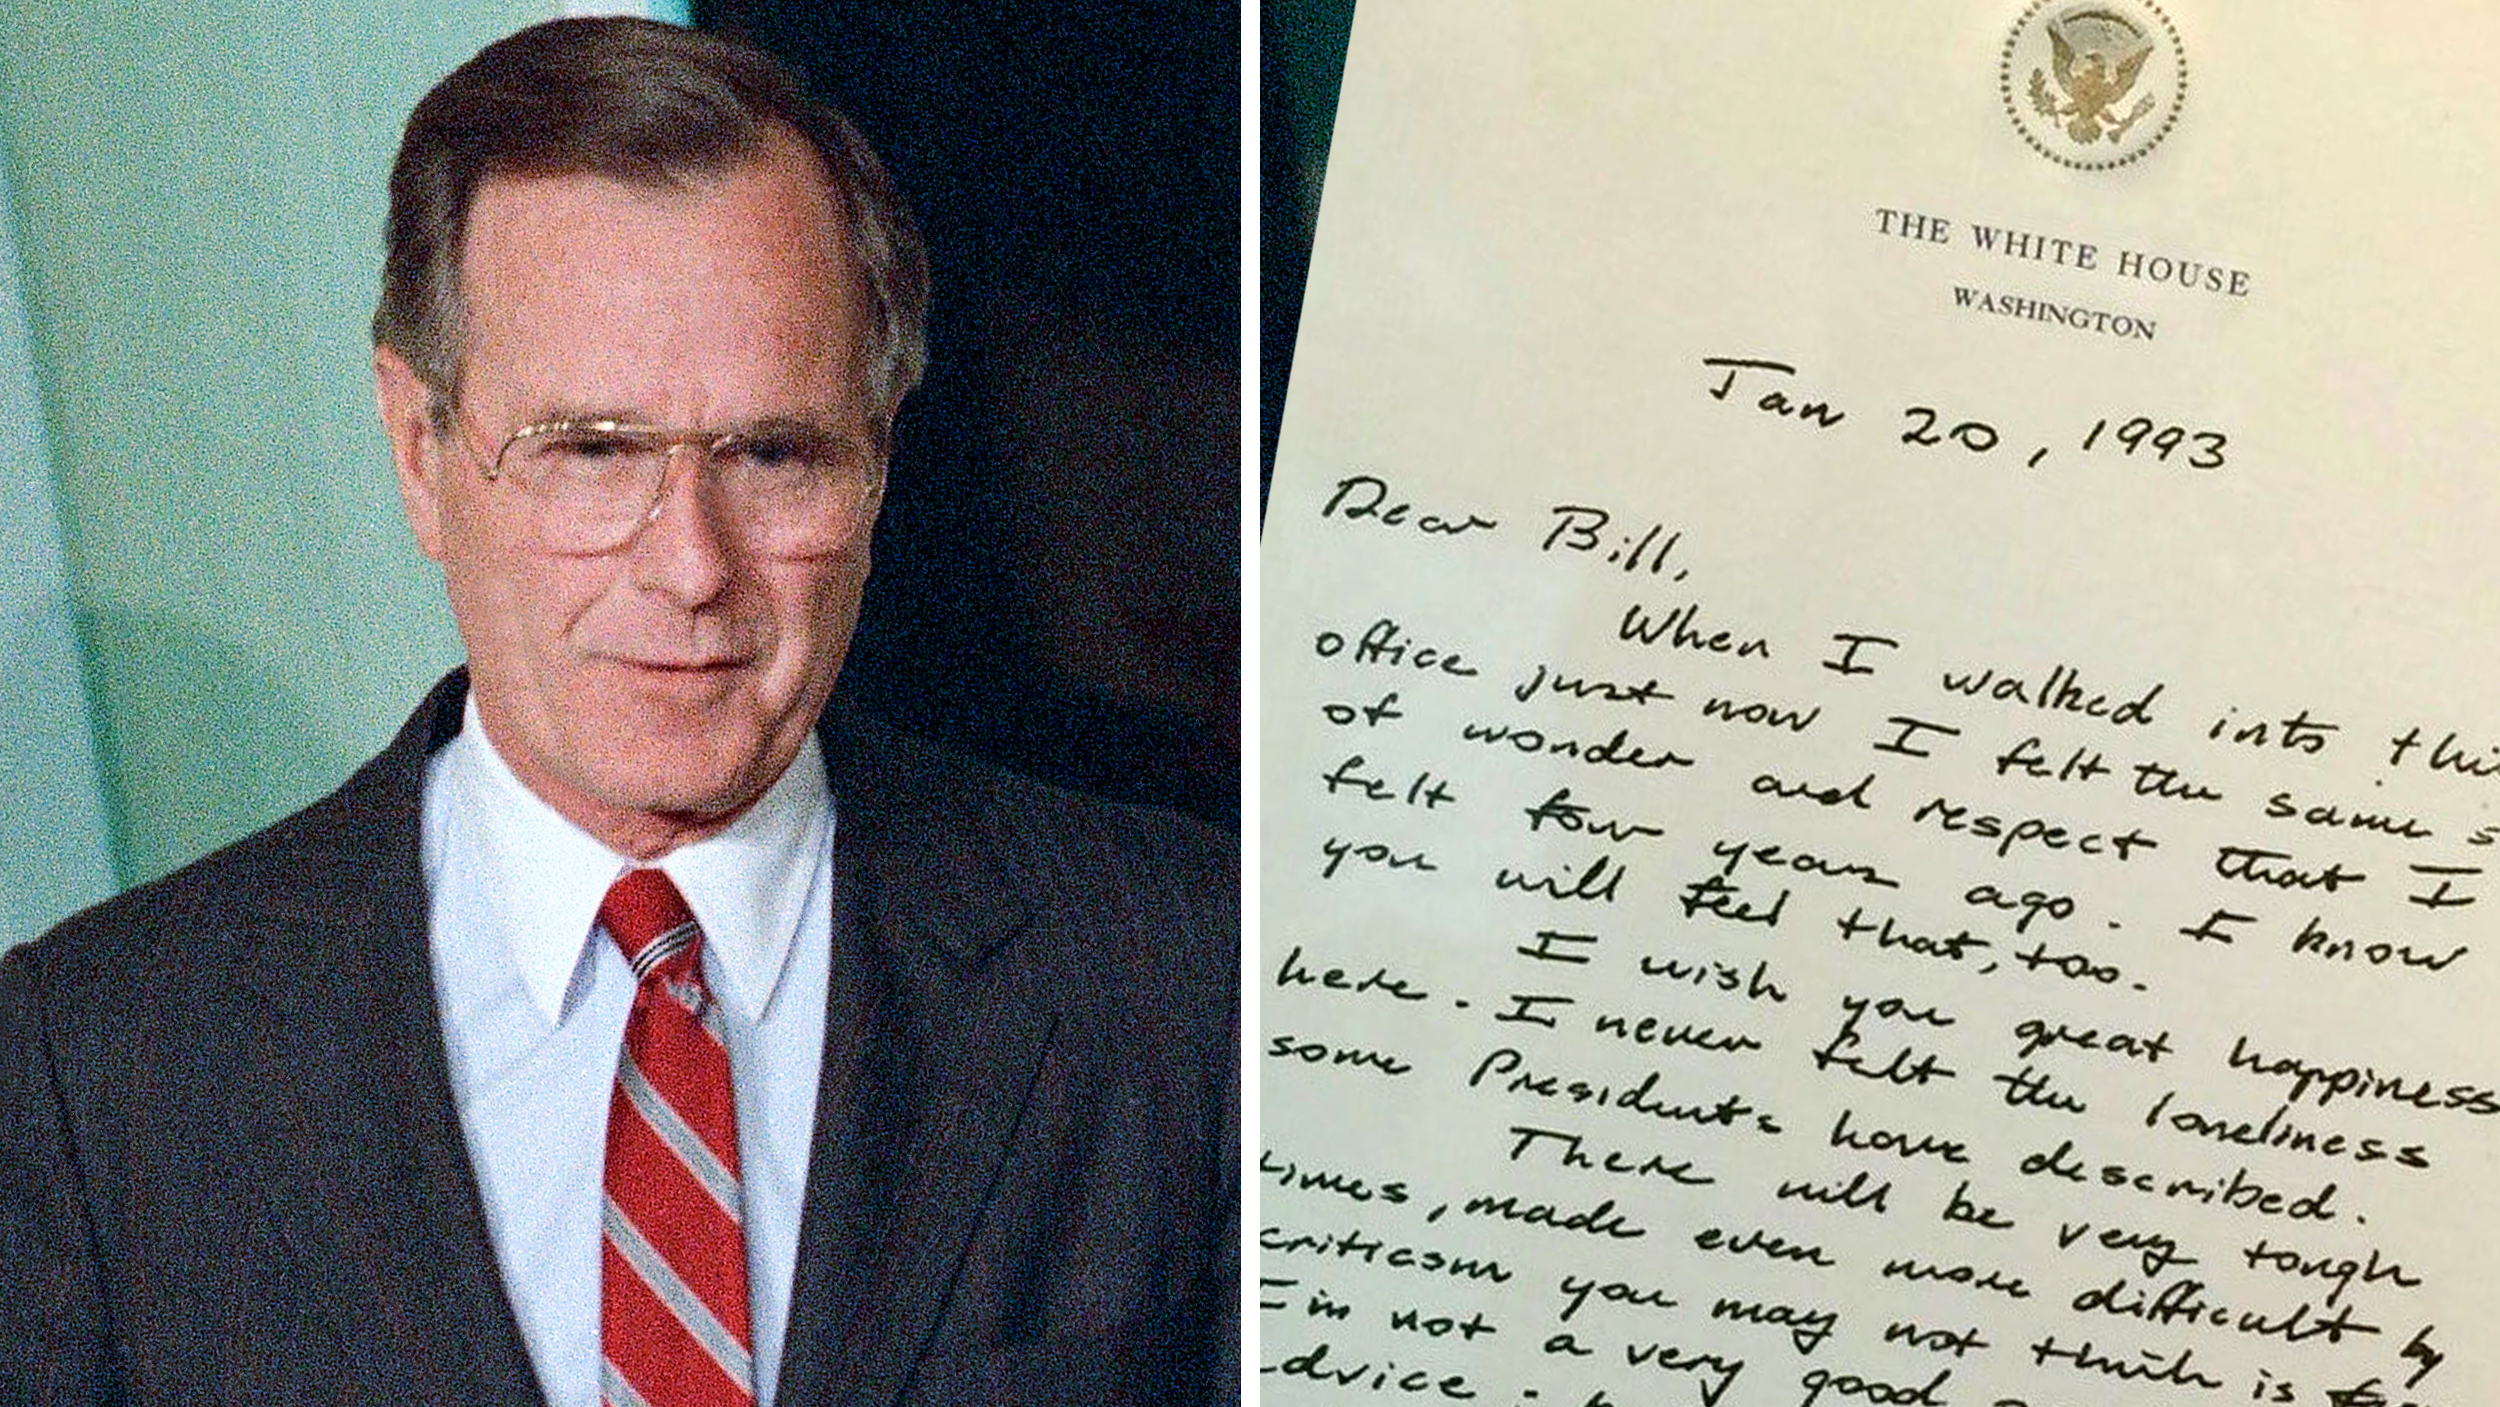 George Bush S Letter To Bill Clinton Is A Lesson In Dignity And Respect